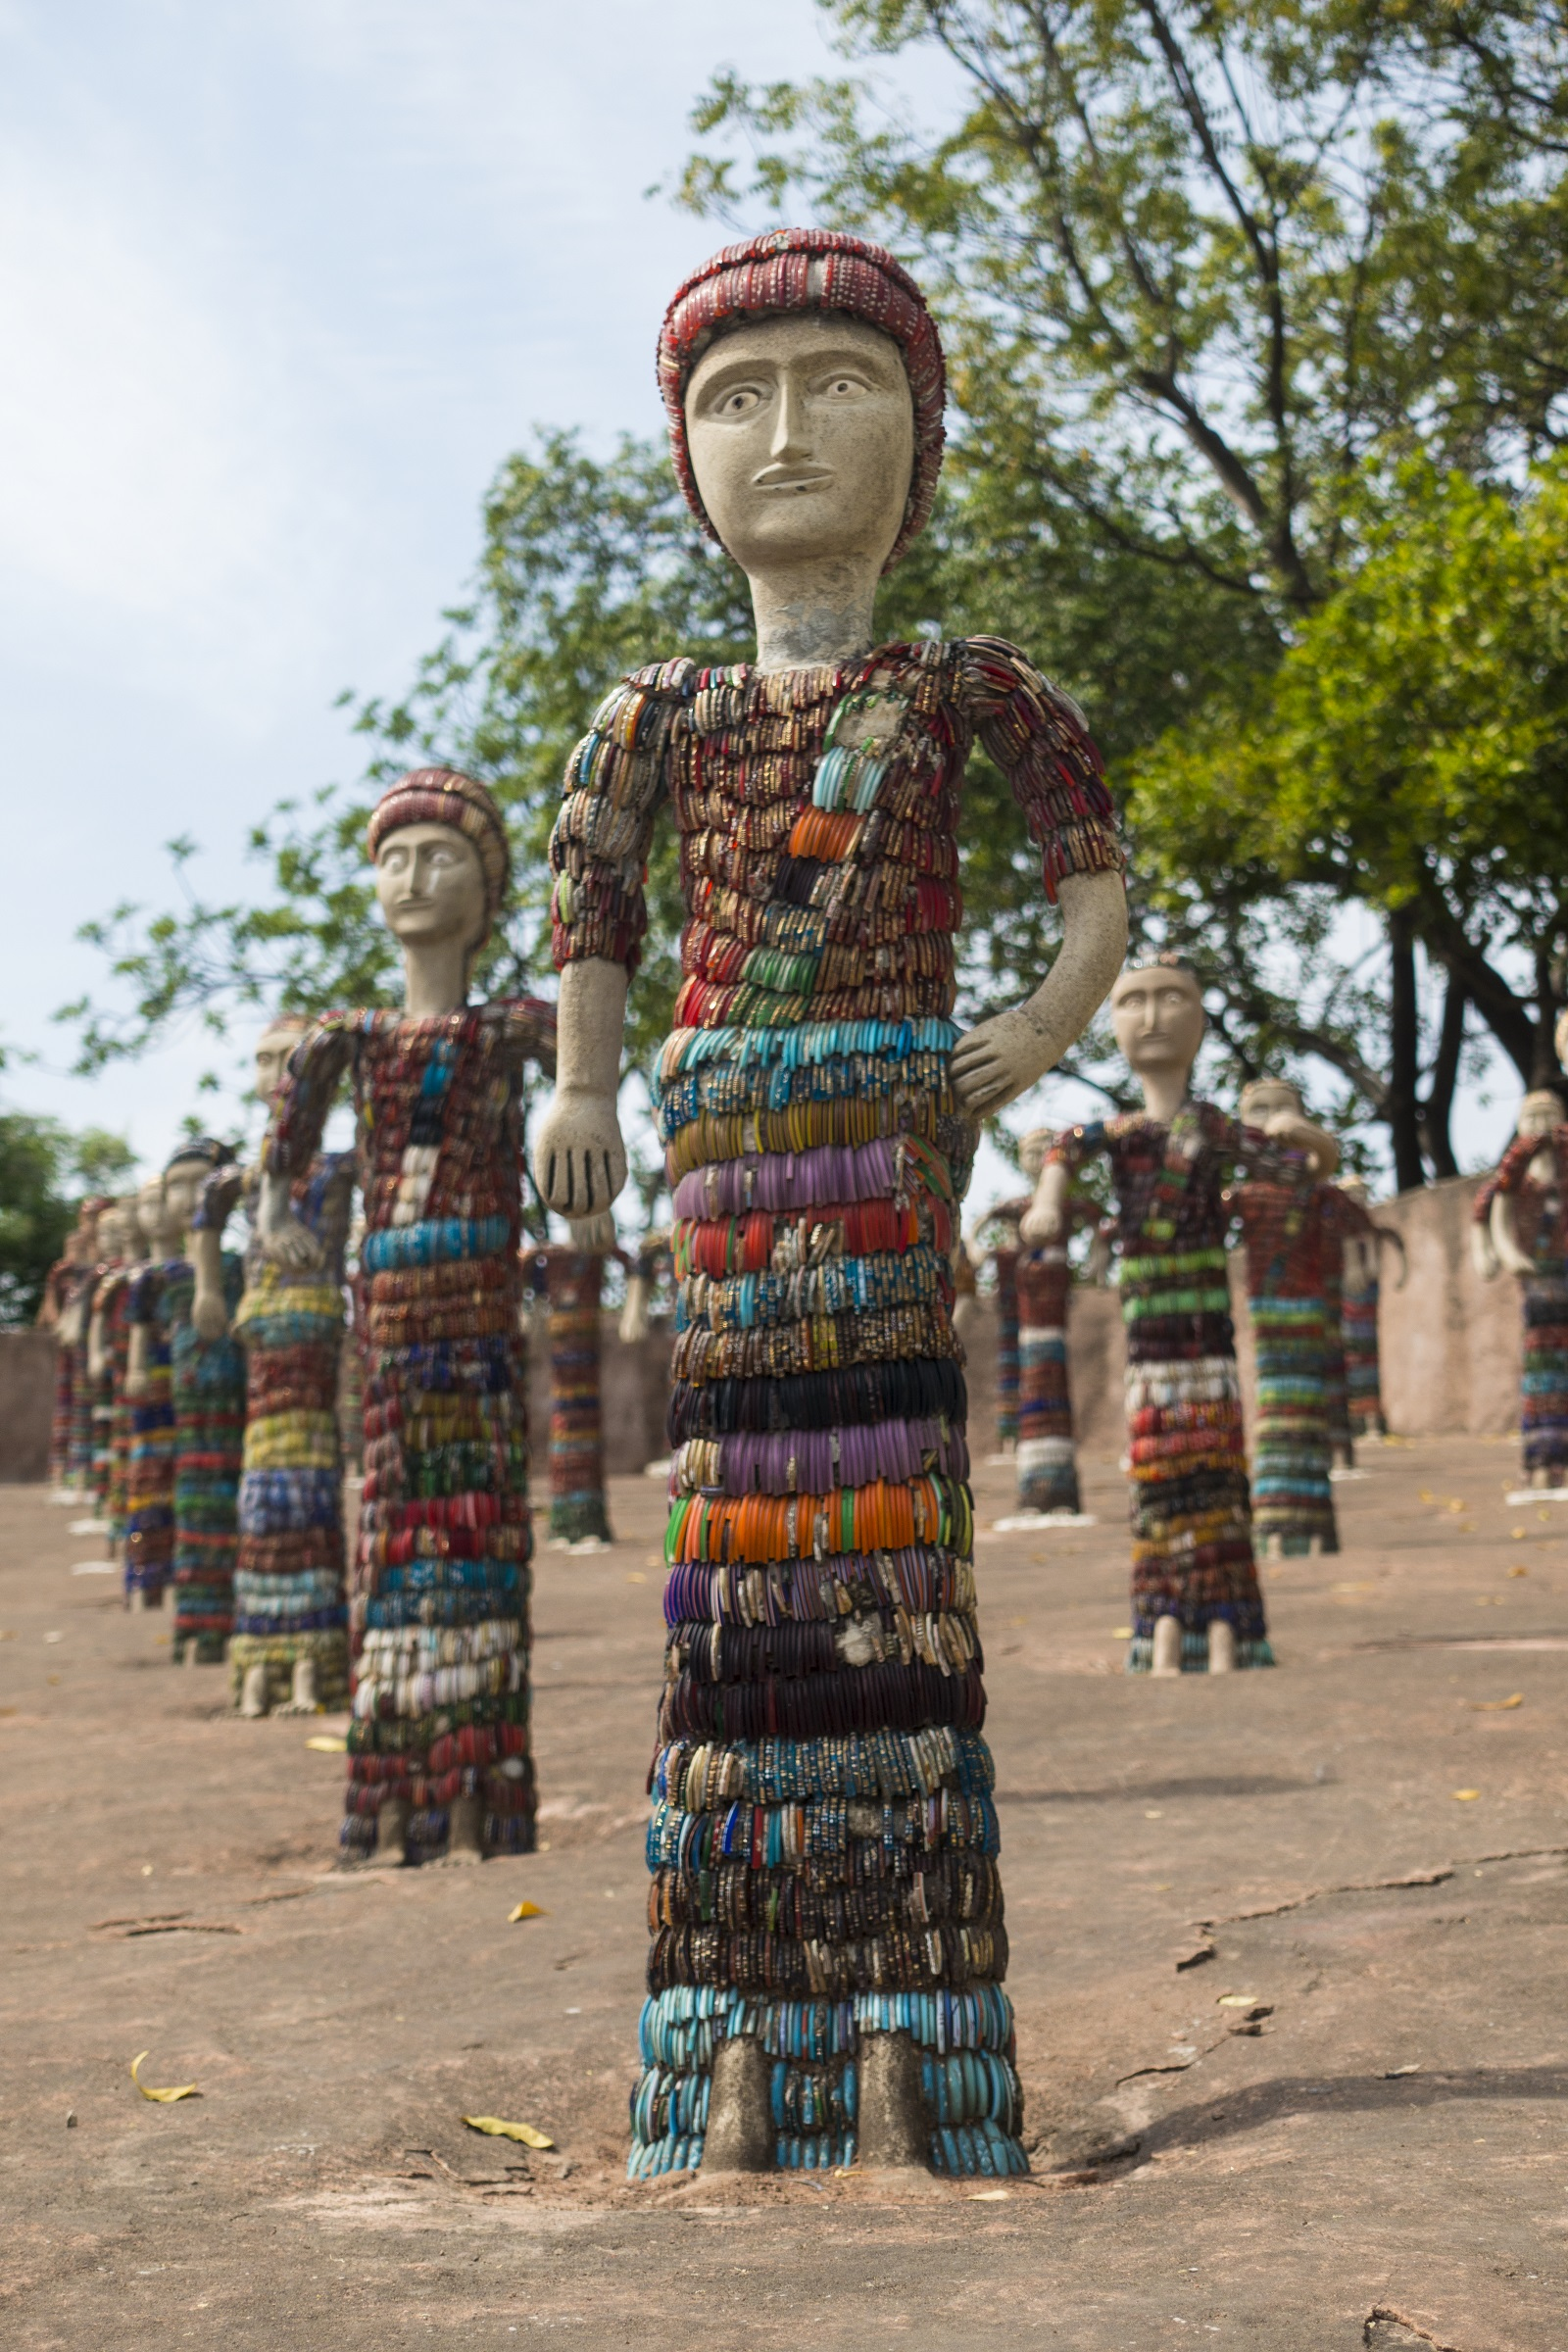 Row of brightly decorated sculptures of people made from discarded pottery fragments